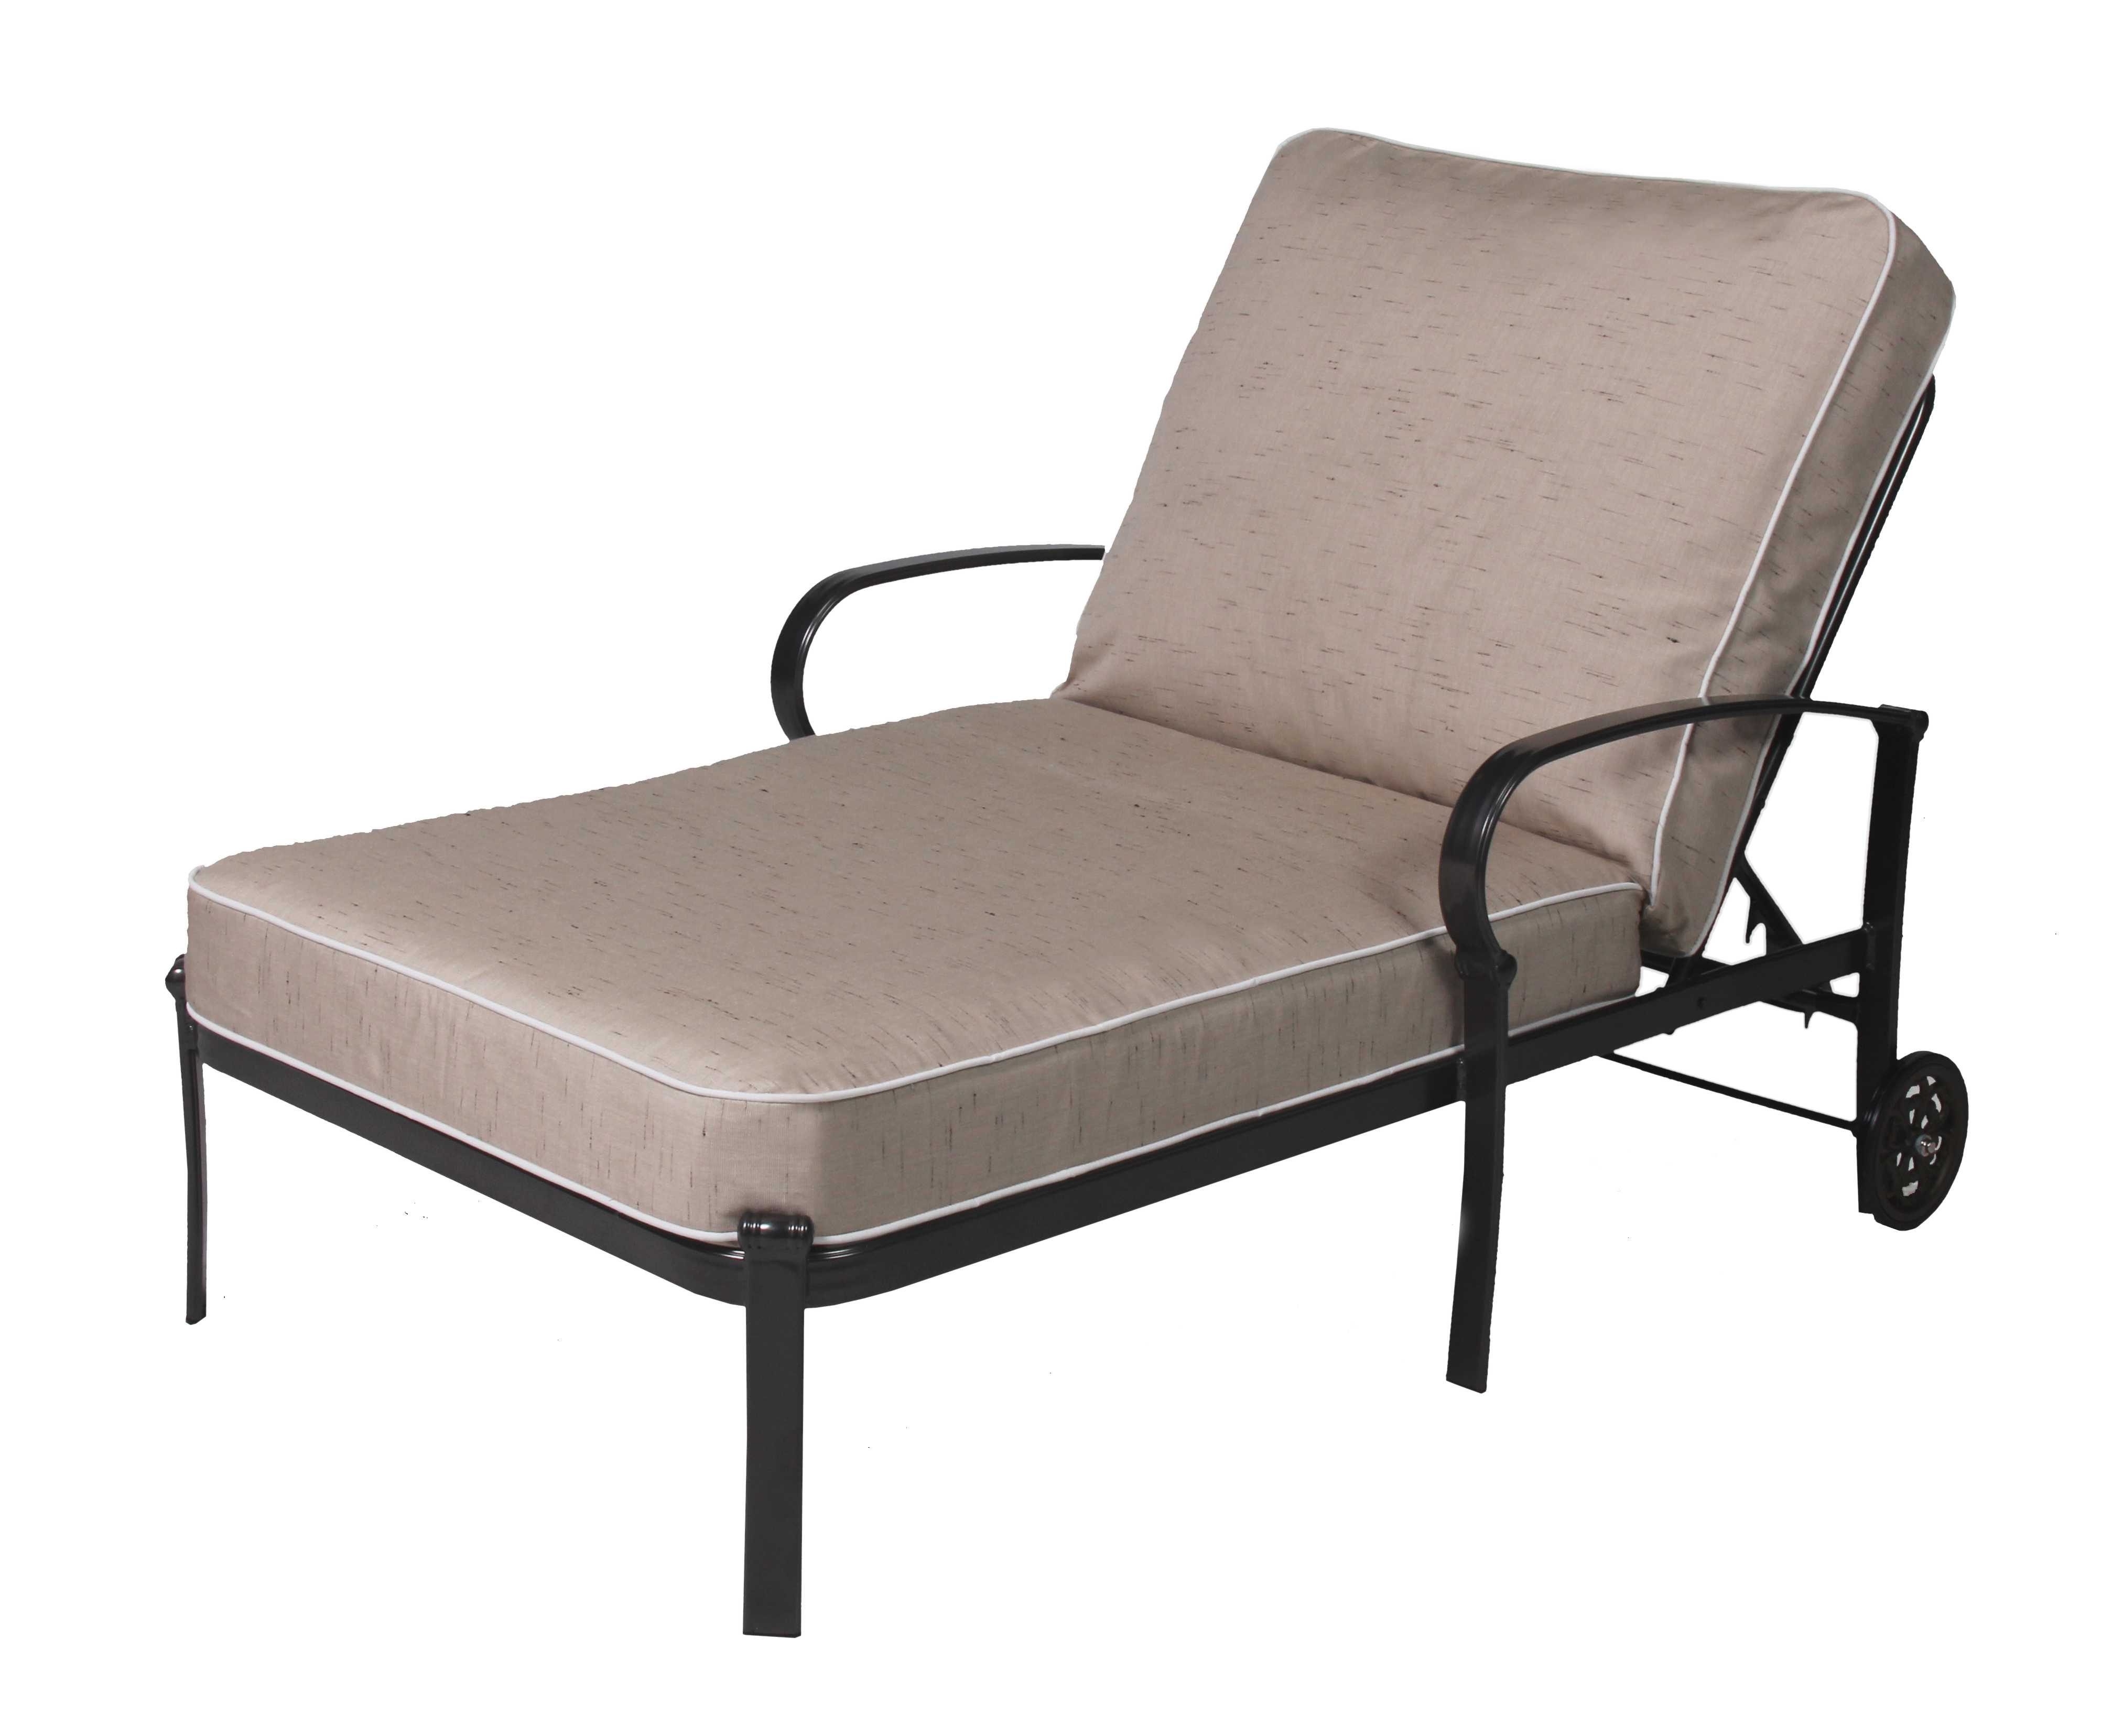 Chair And A Half Chaise Suncoast Madison Aluminum Chaise And A Half D913